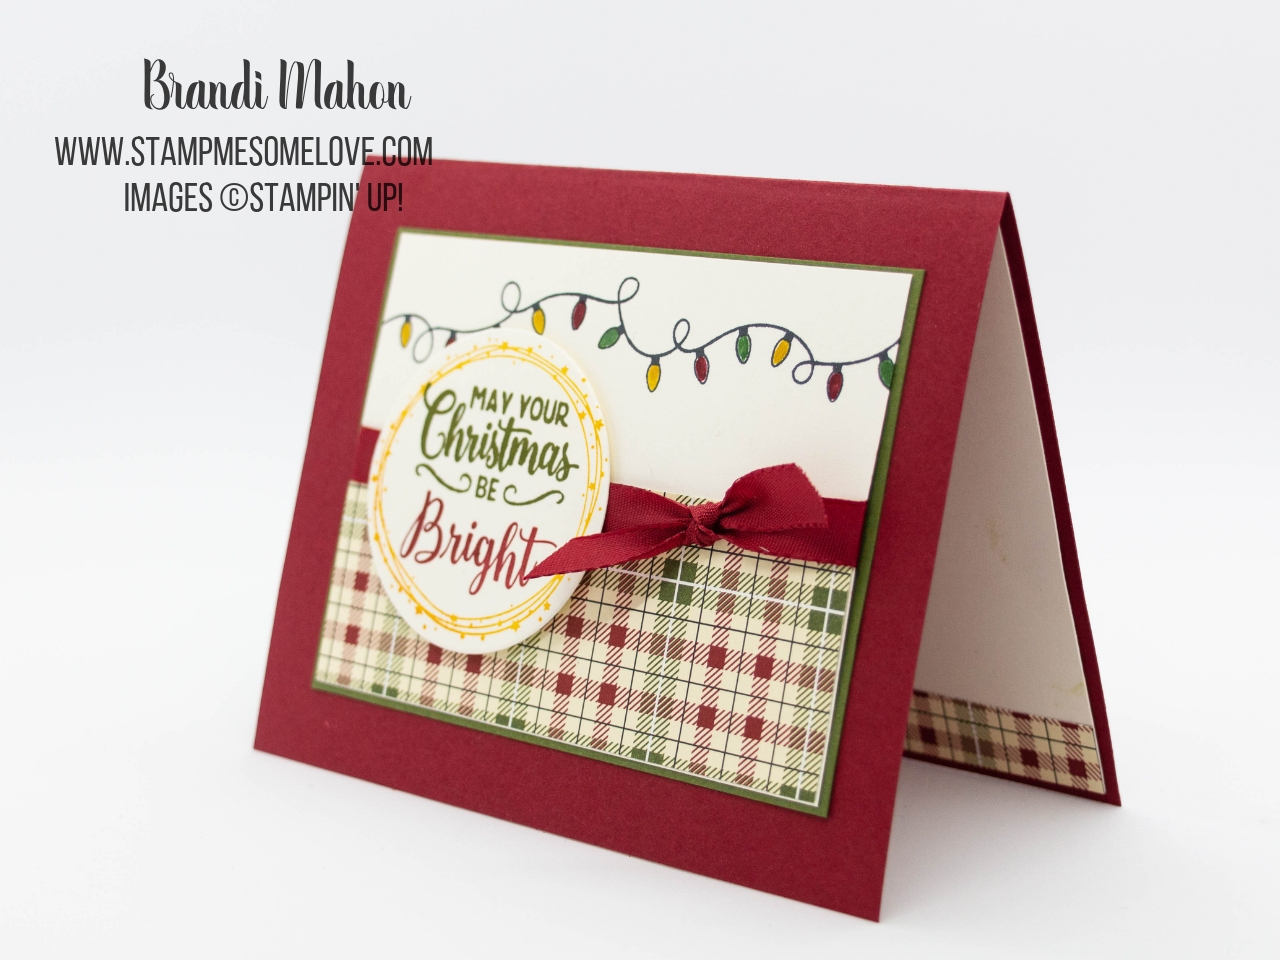 Making Christmas Bright Christmas Card Project - Stamp Me Some Love